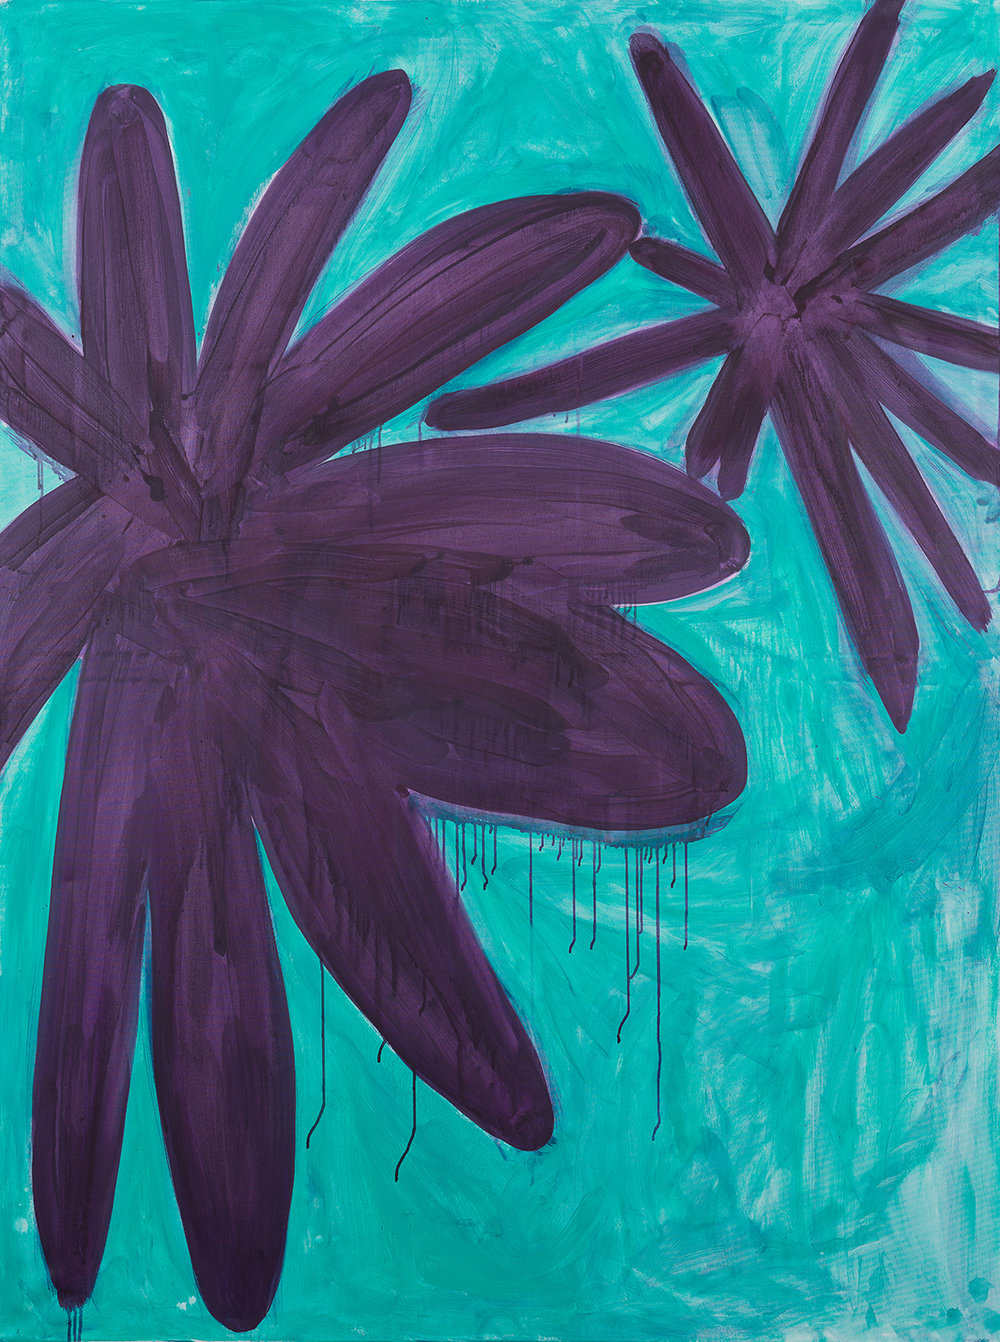 big flower, violett, turquois, 2014